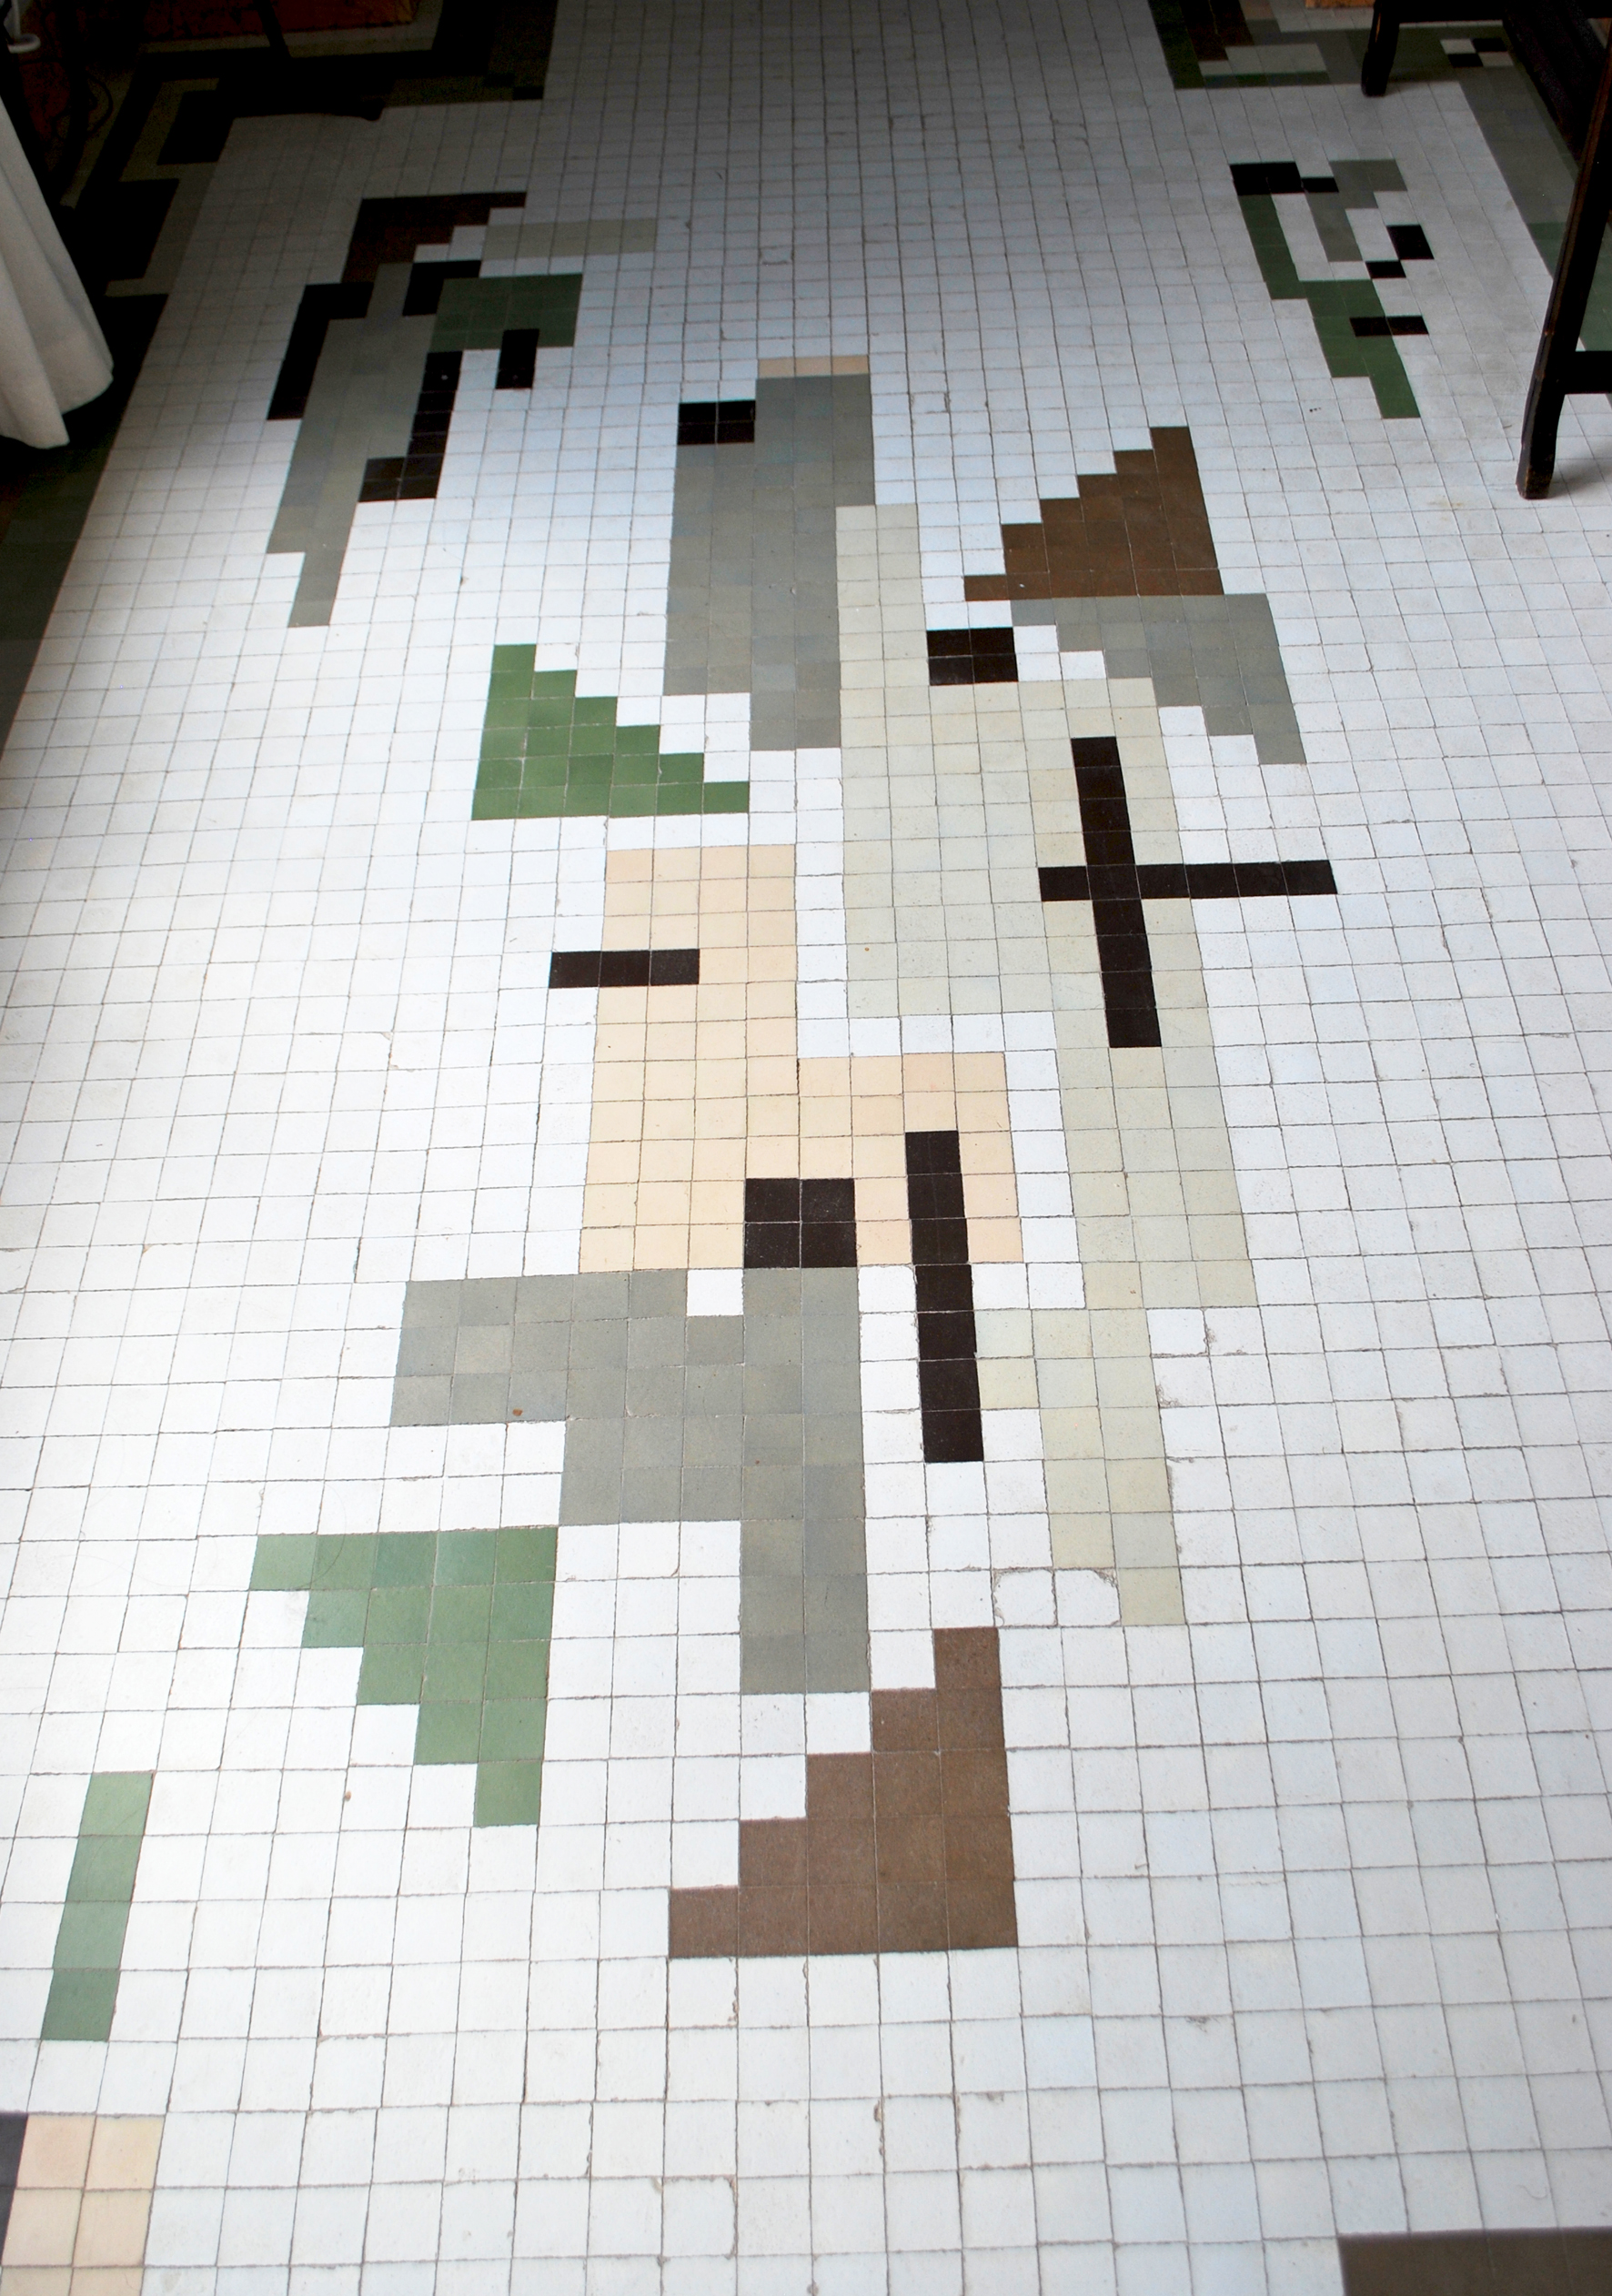 An abstract layout adorns the floor of the hallway that overlooks the central courtyard.